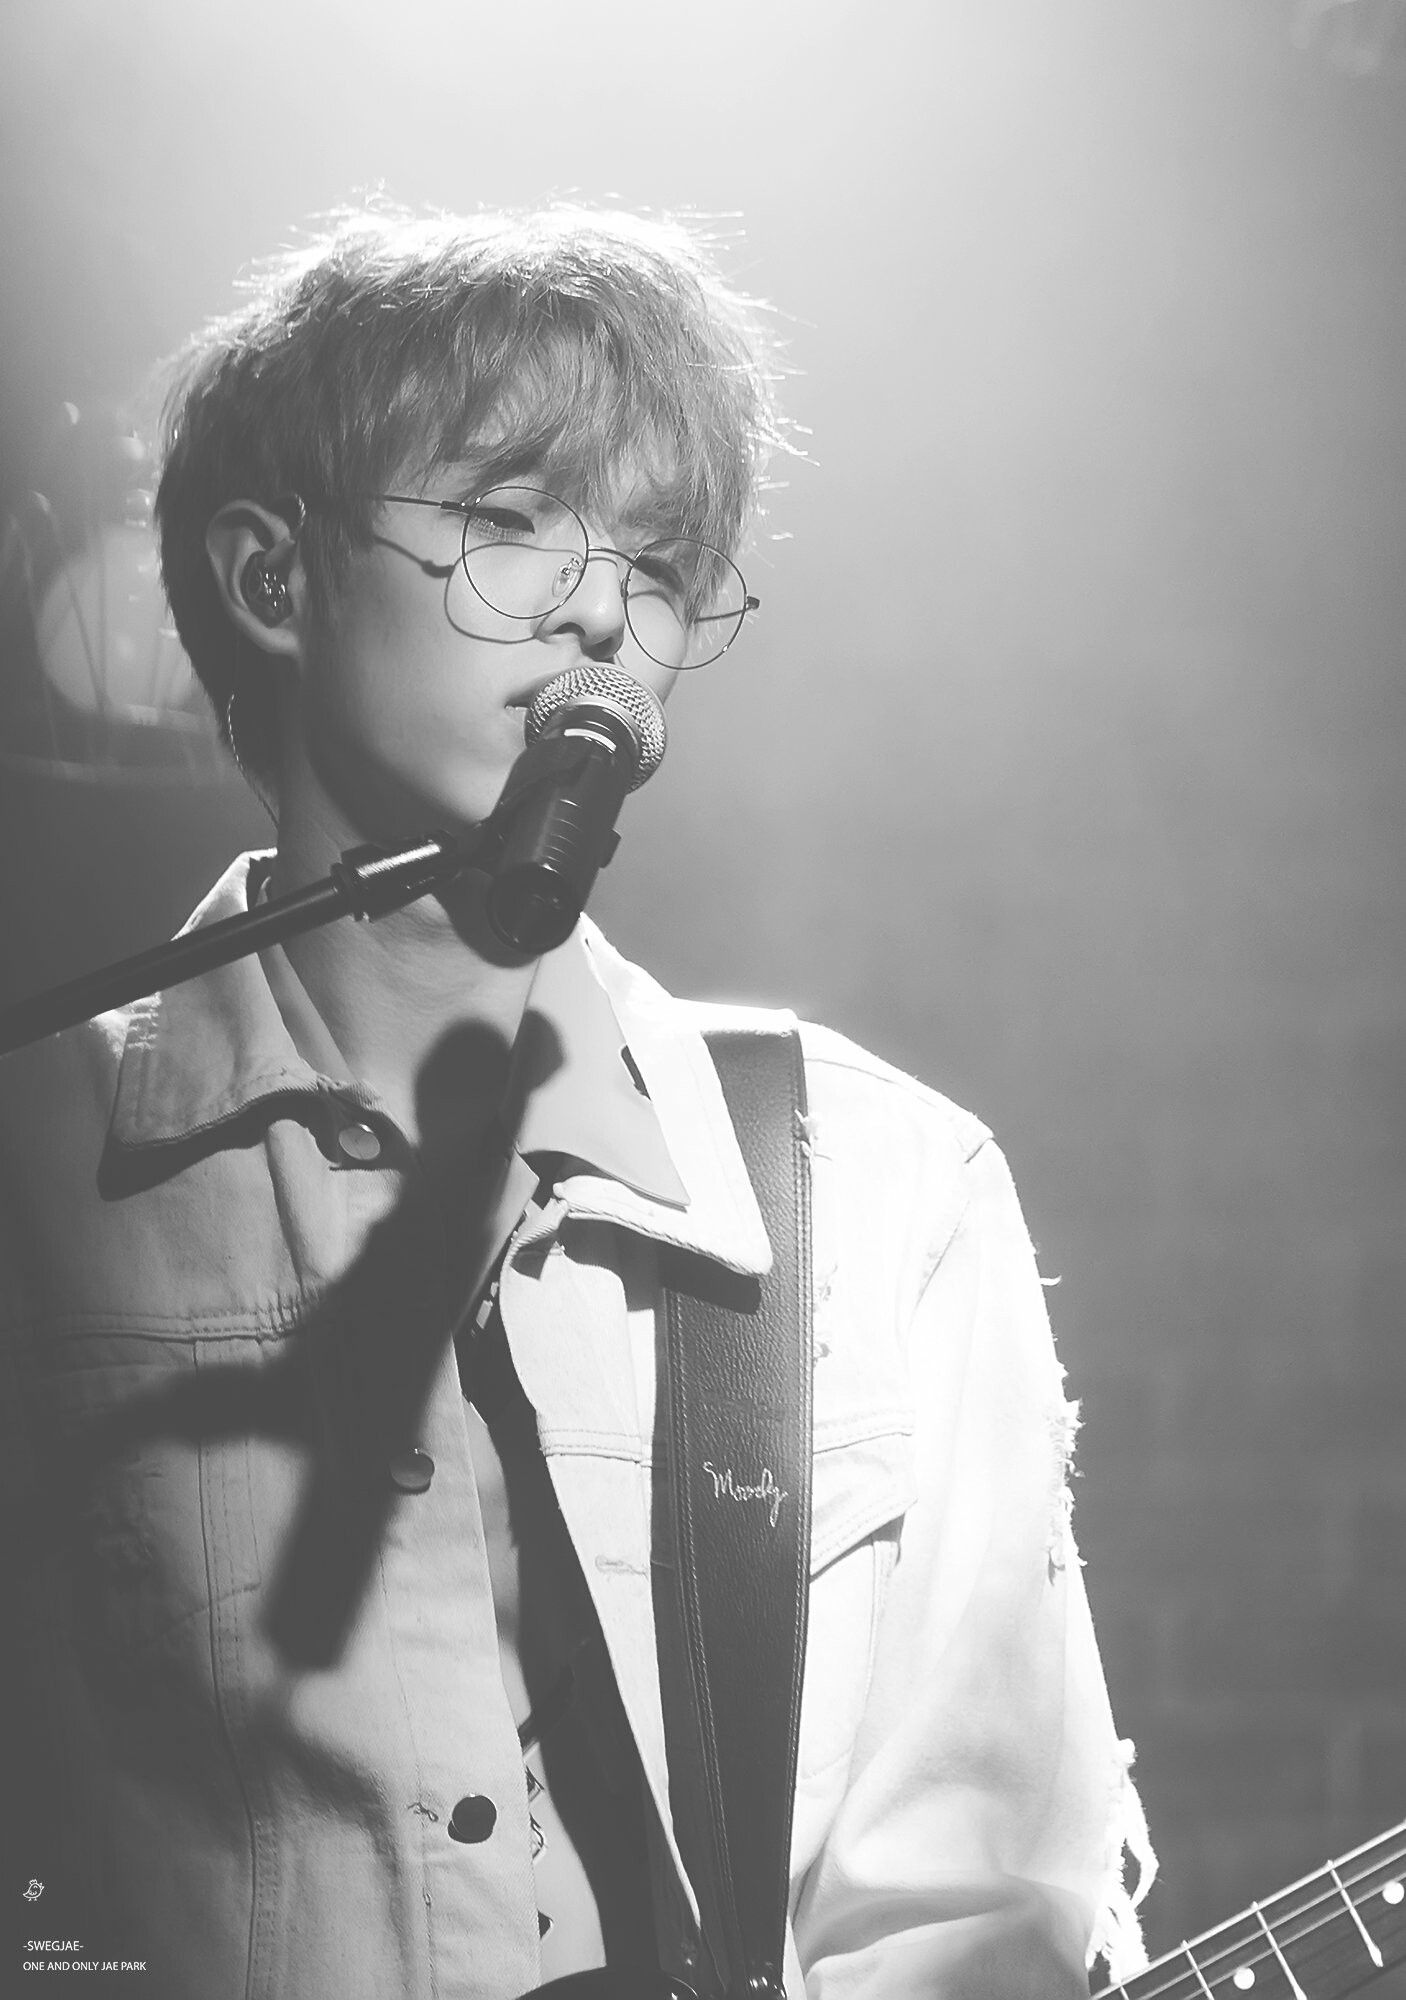 ©SWEGJAE | Do not edit. ; JAE